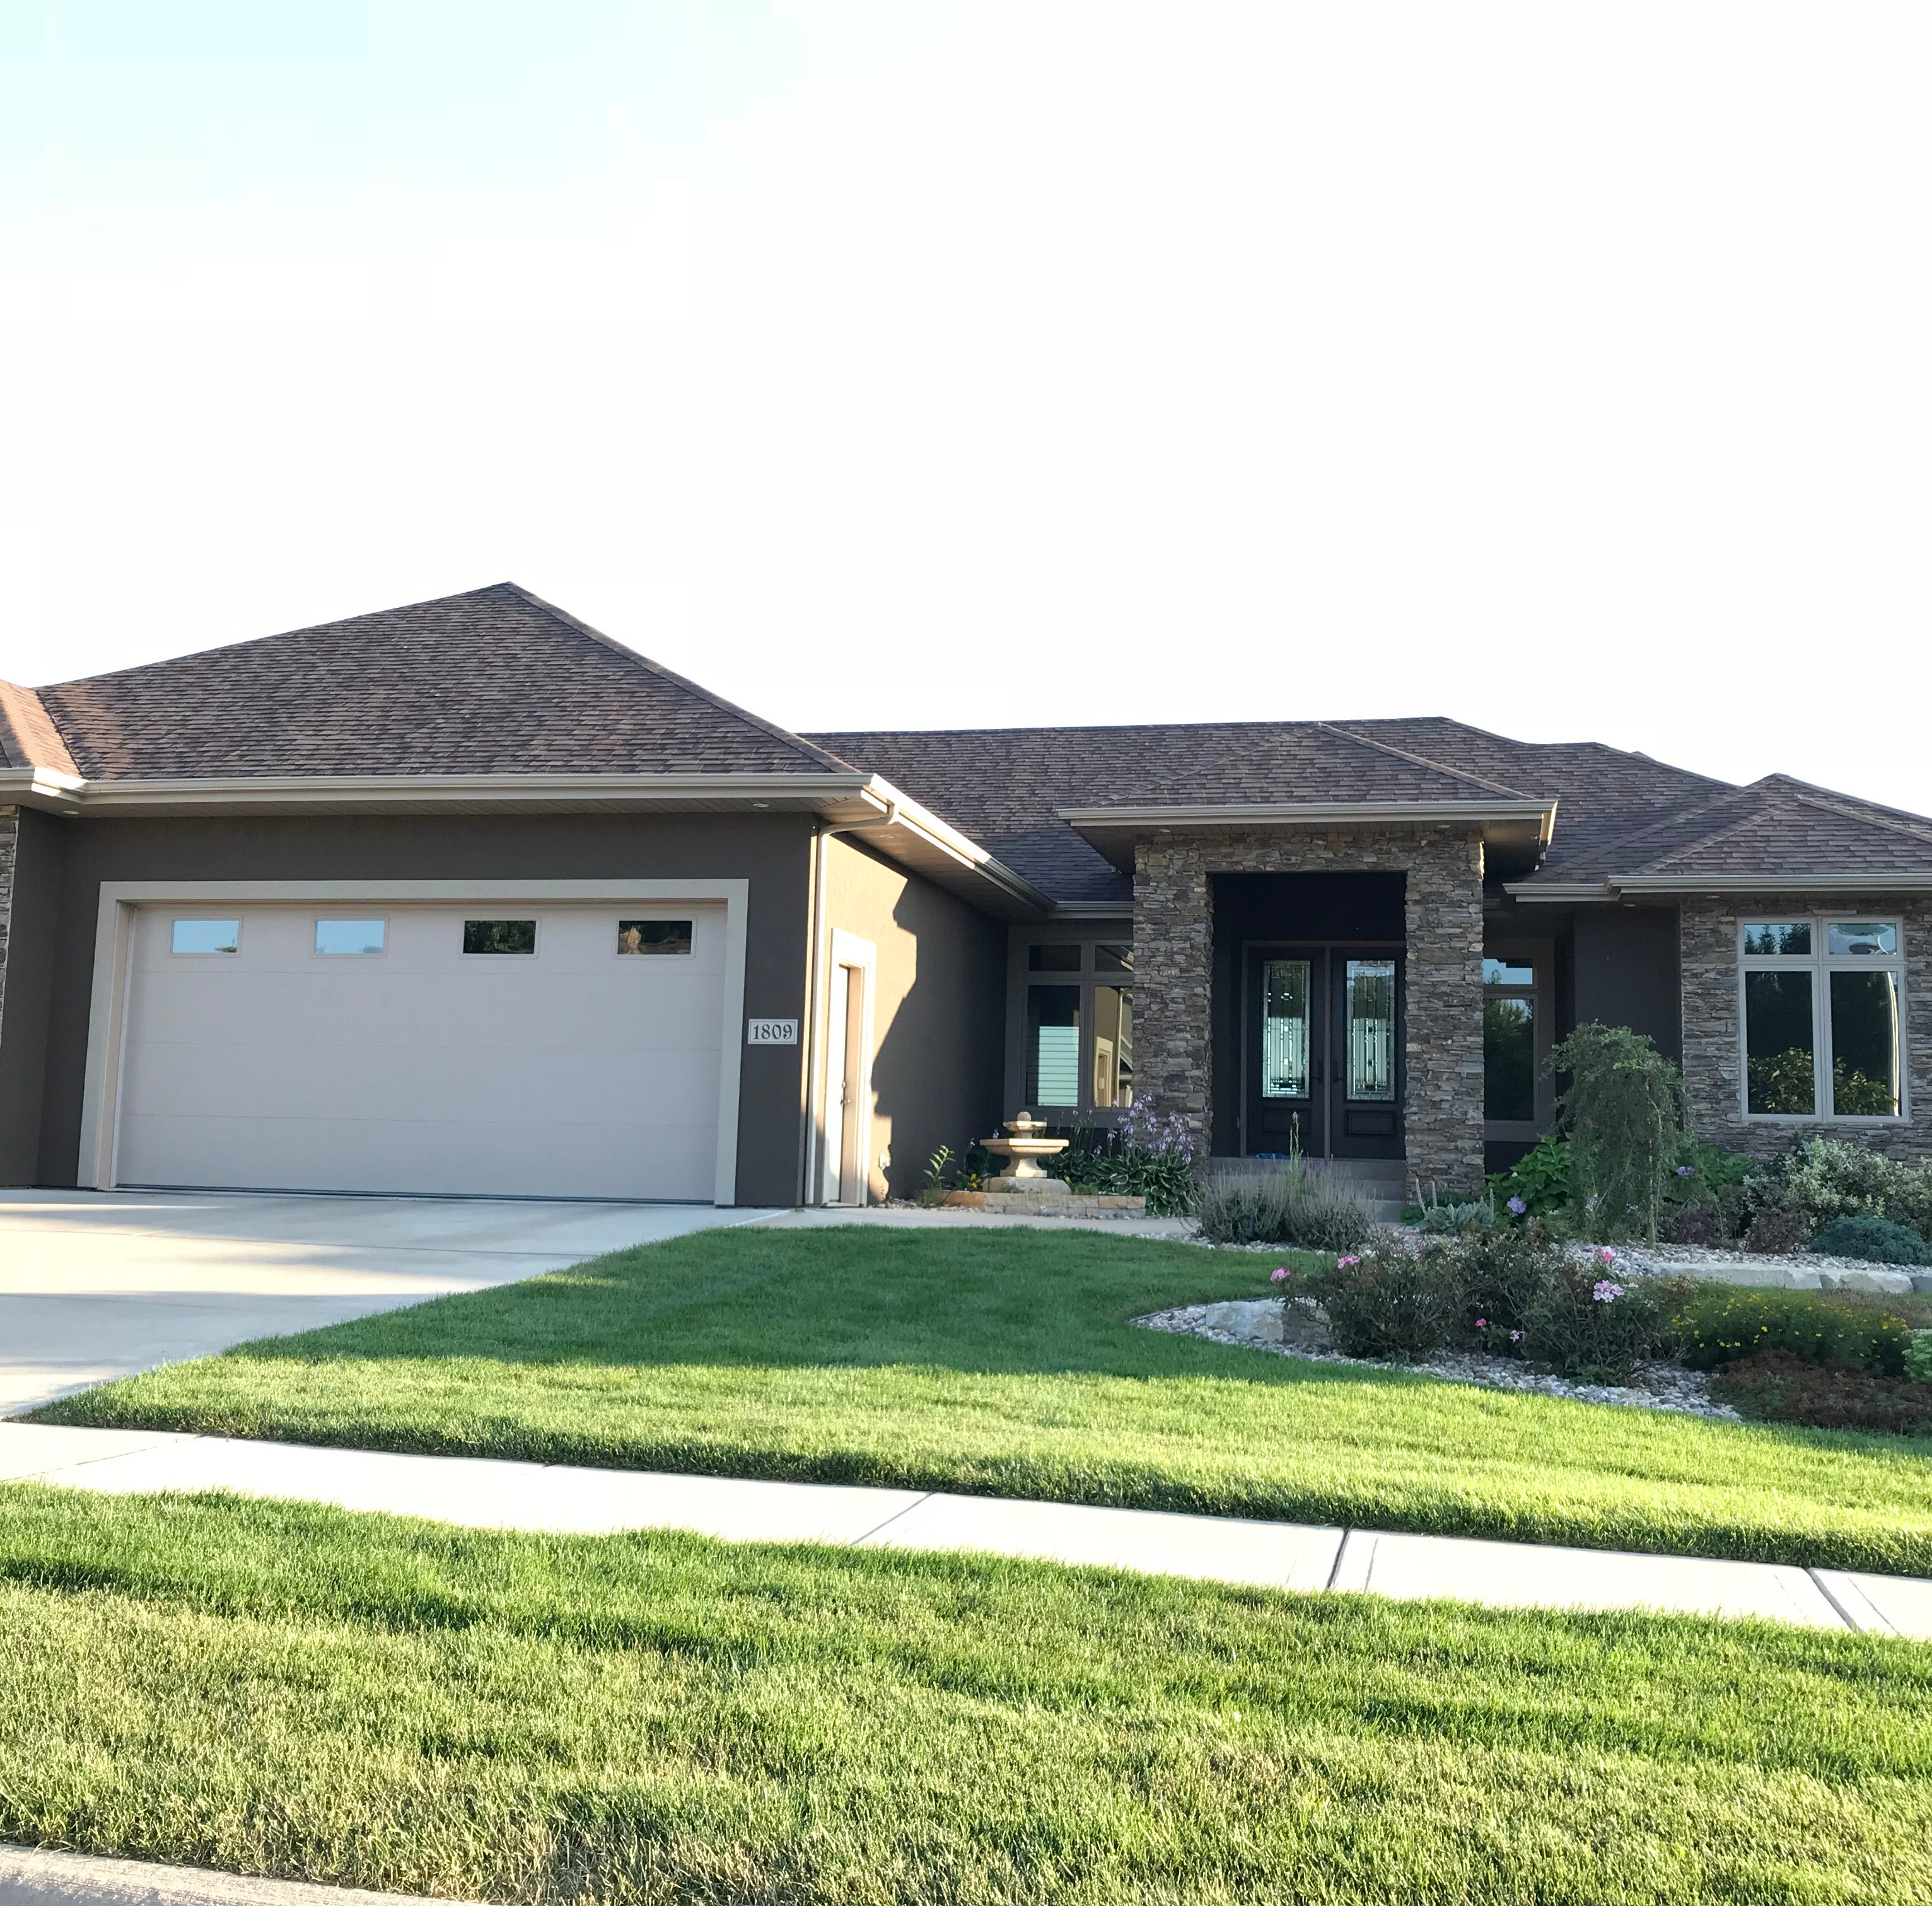 $670,000 east-side Sioux Falls home with greenway view tops home sales report